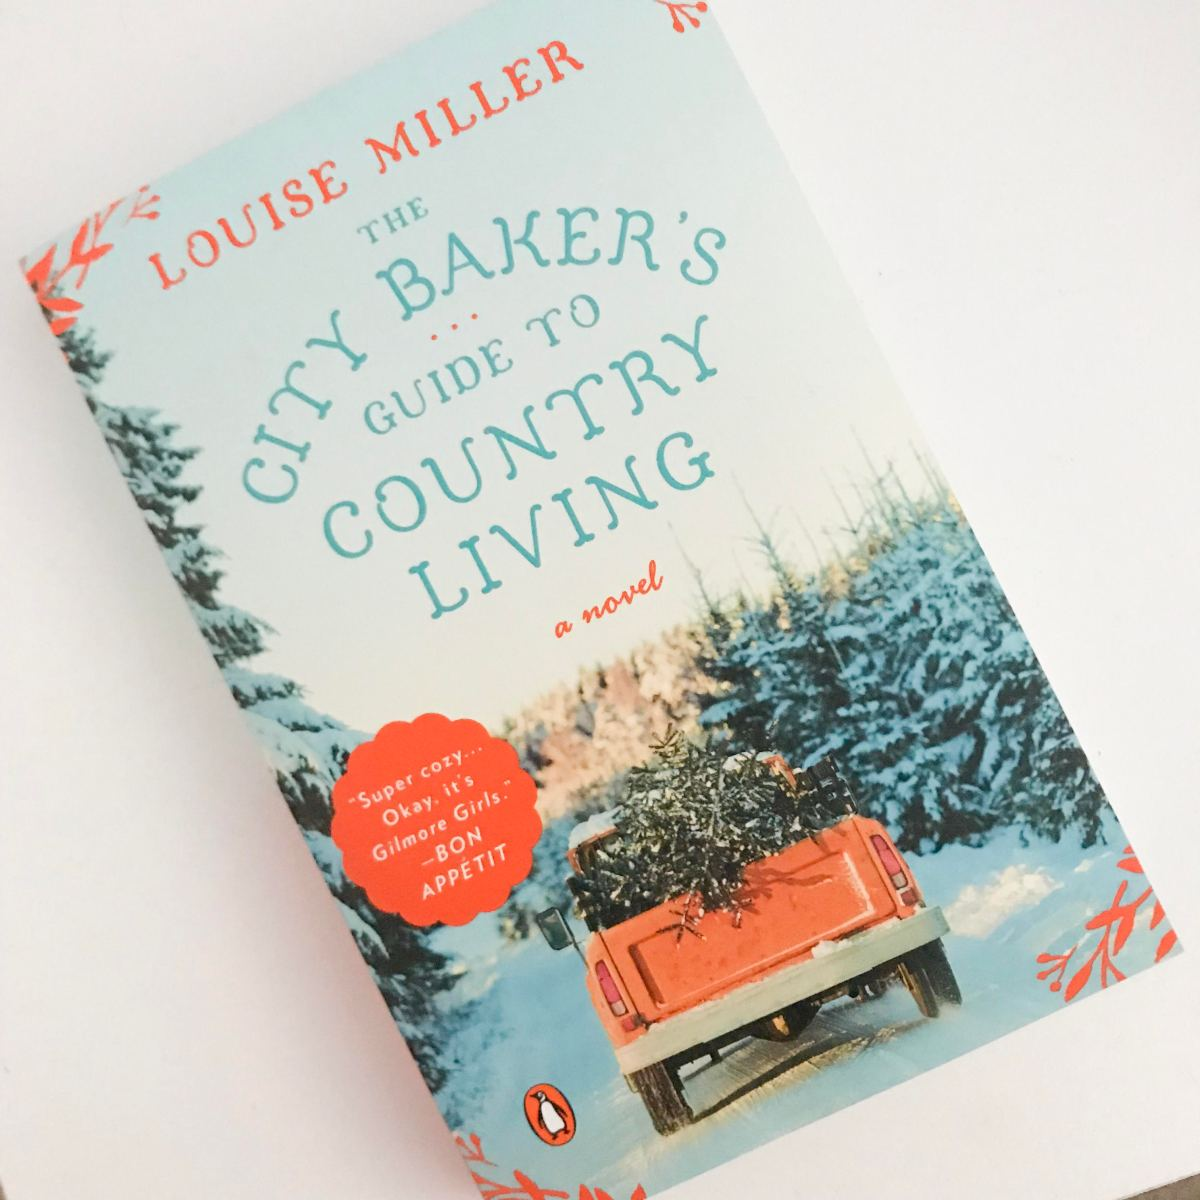 Book Review: The City Baker's Guide to CountryLiving